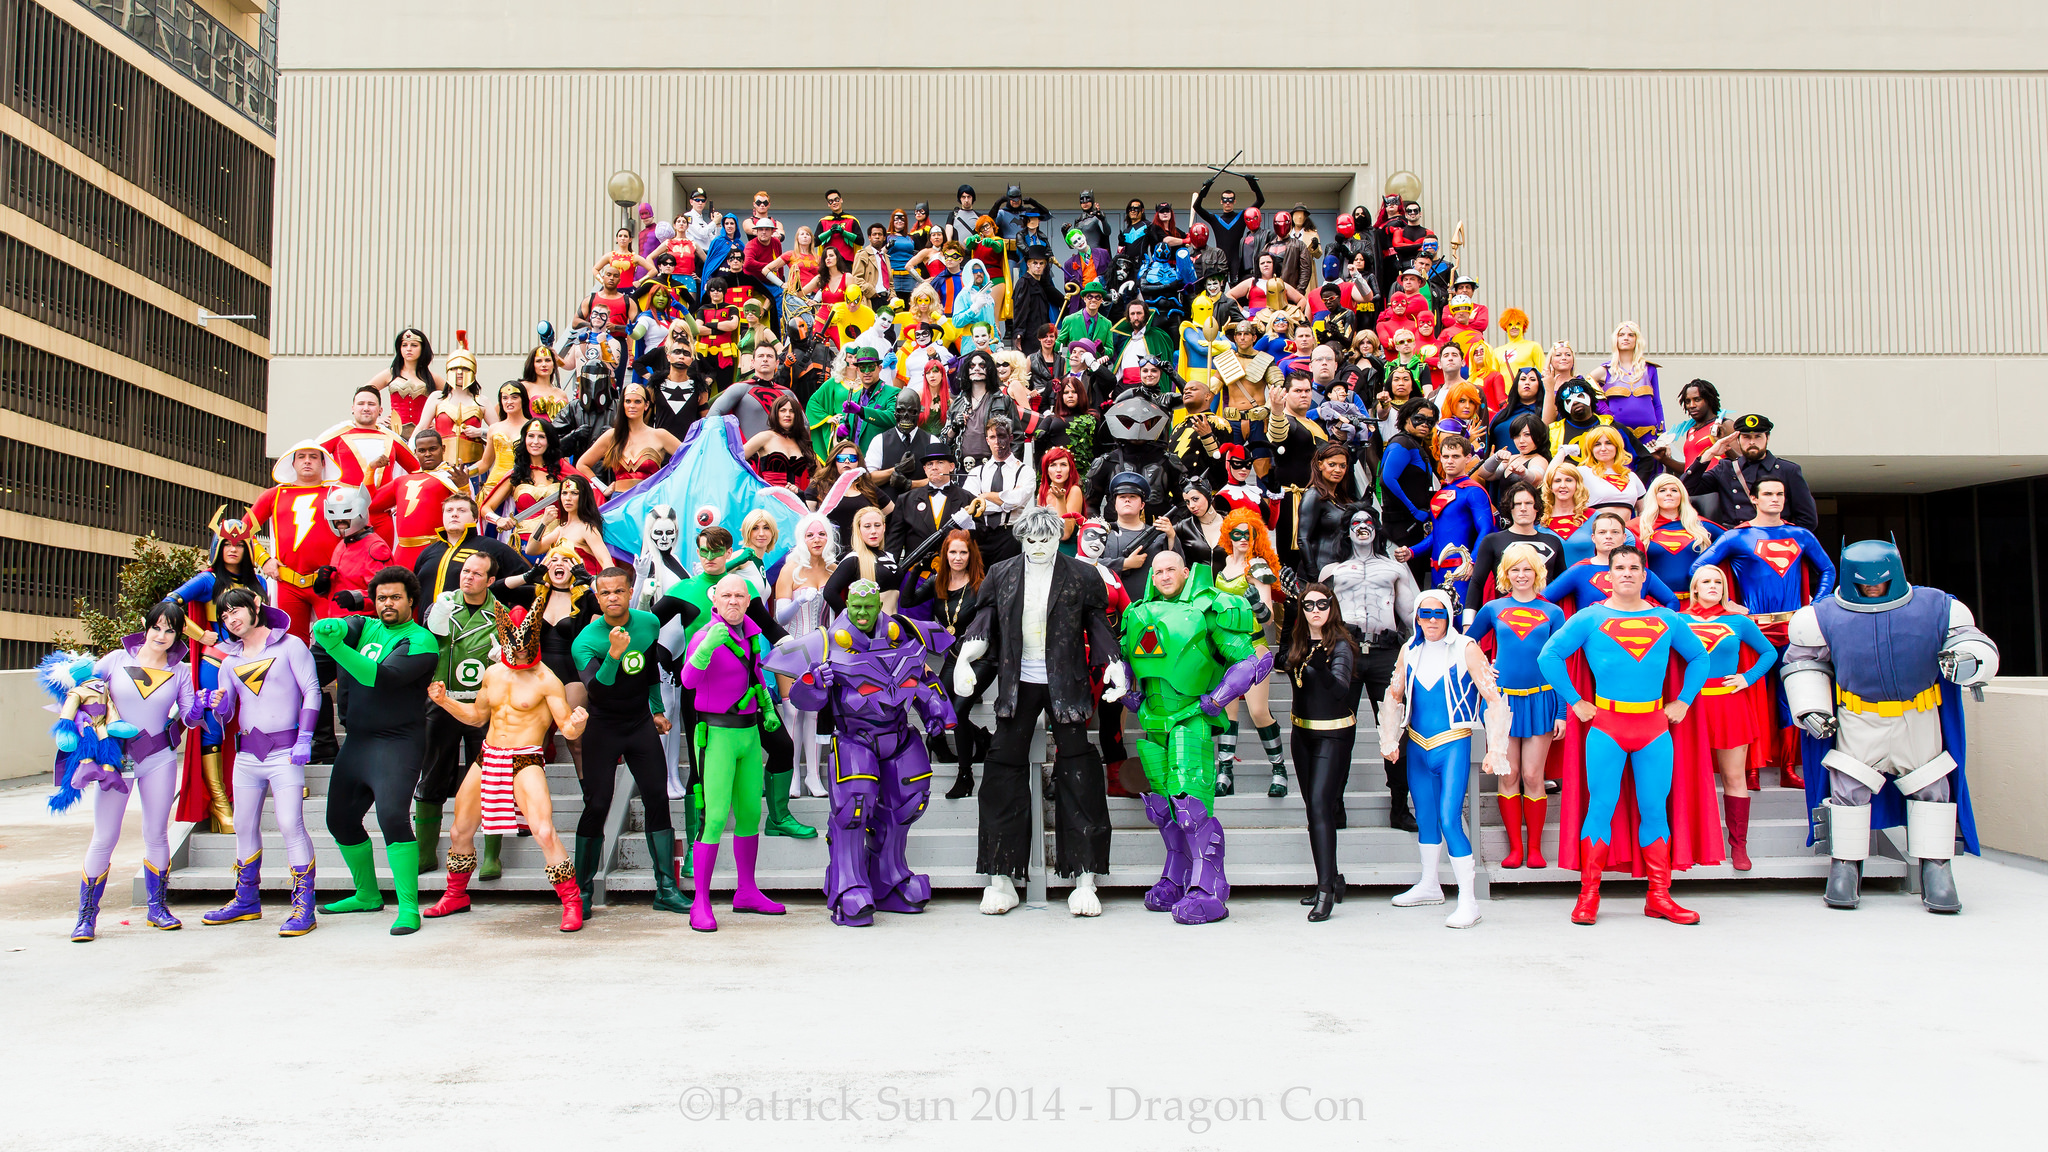 Dragon Con 2014 DC Comics Cosplay - Superhero Costuming Forum - photo by Patrick Sun